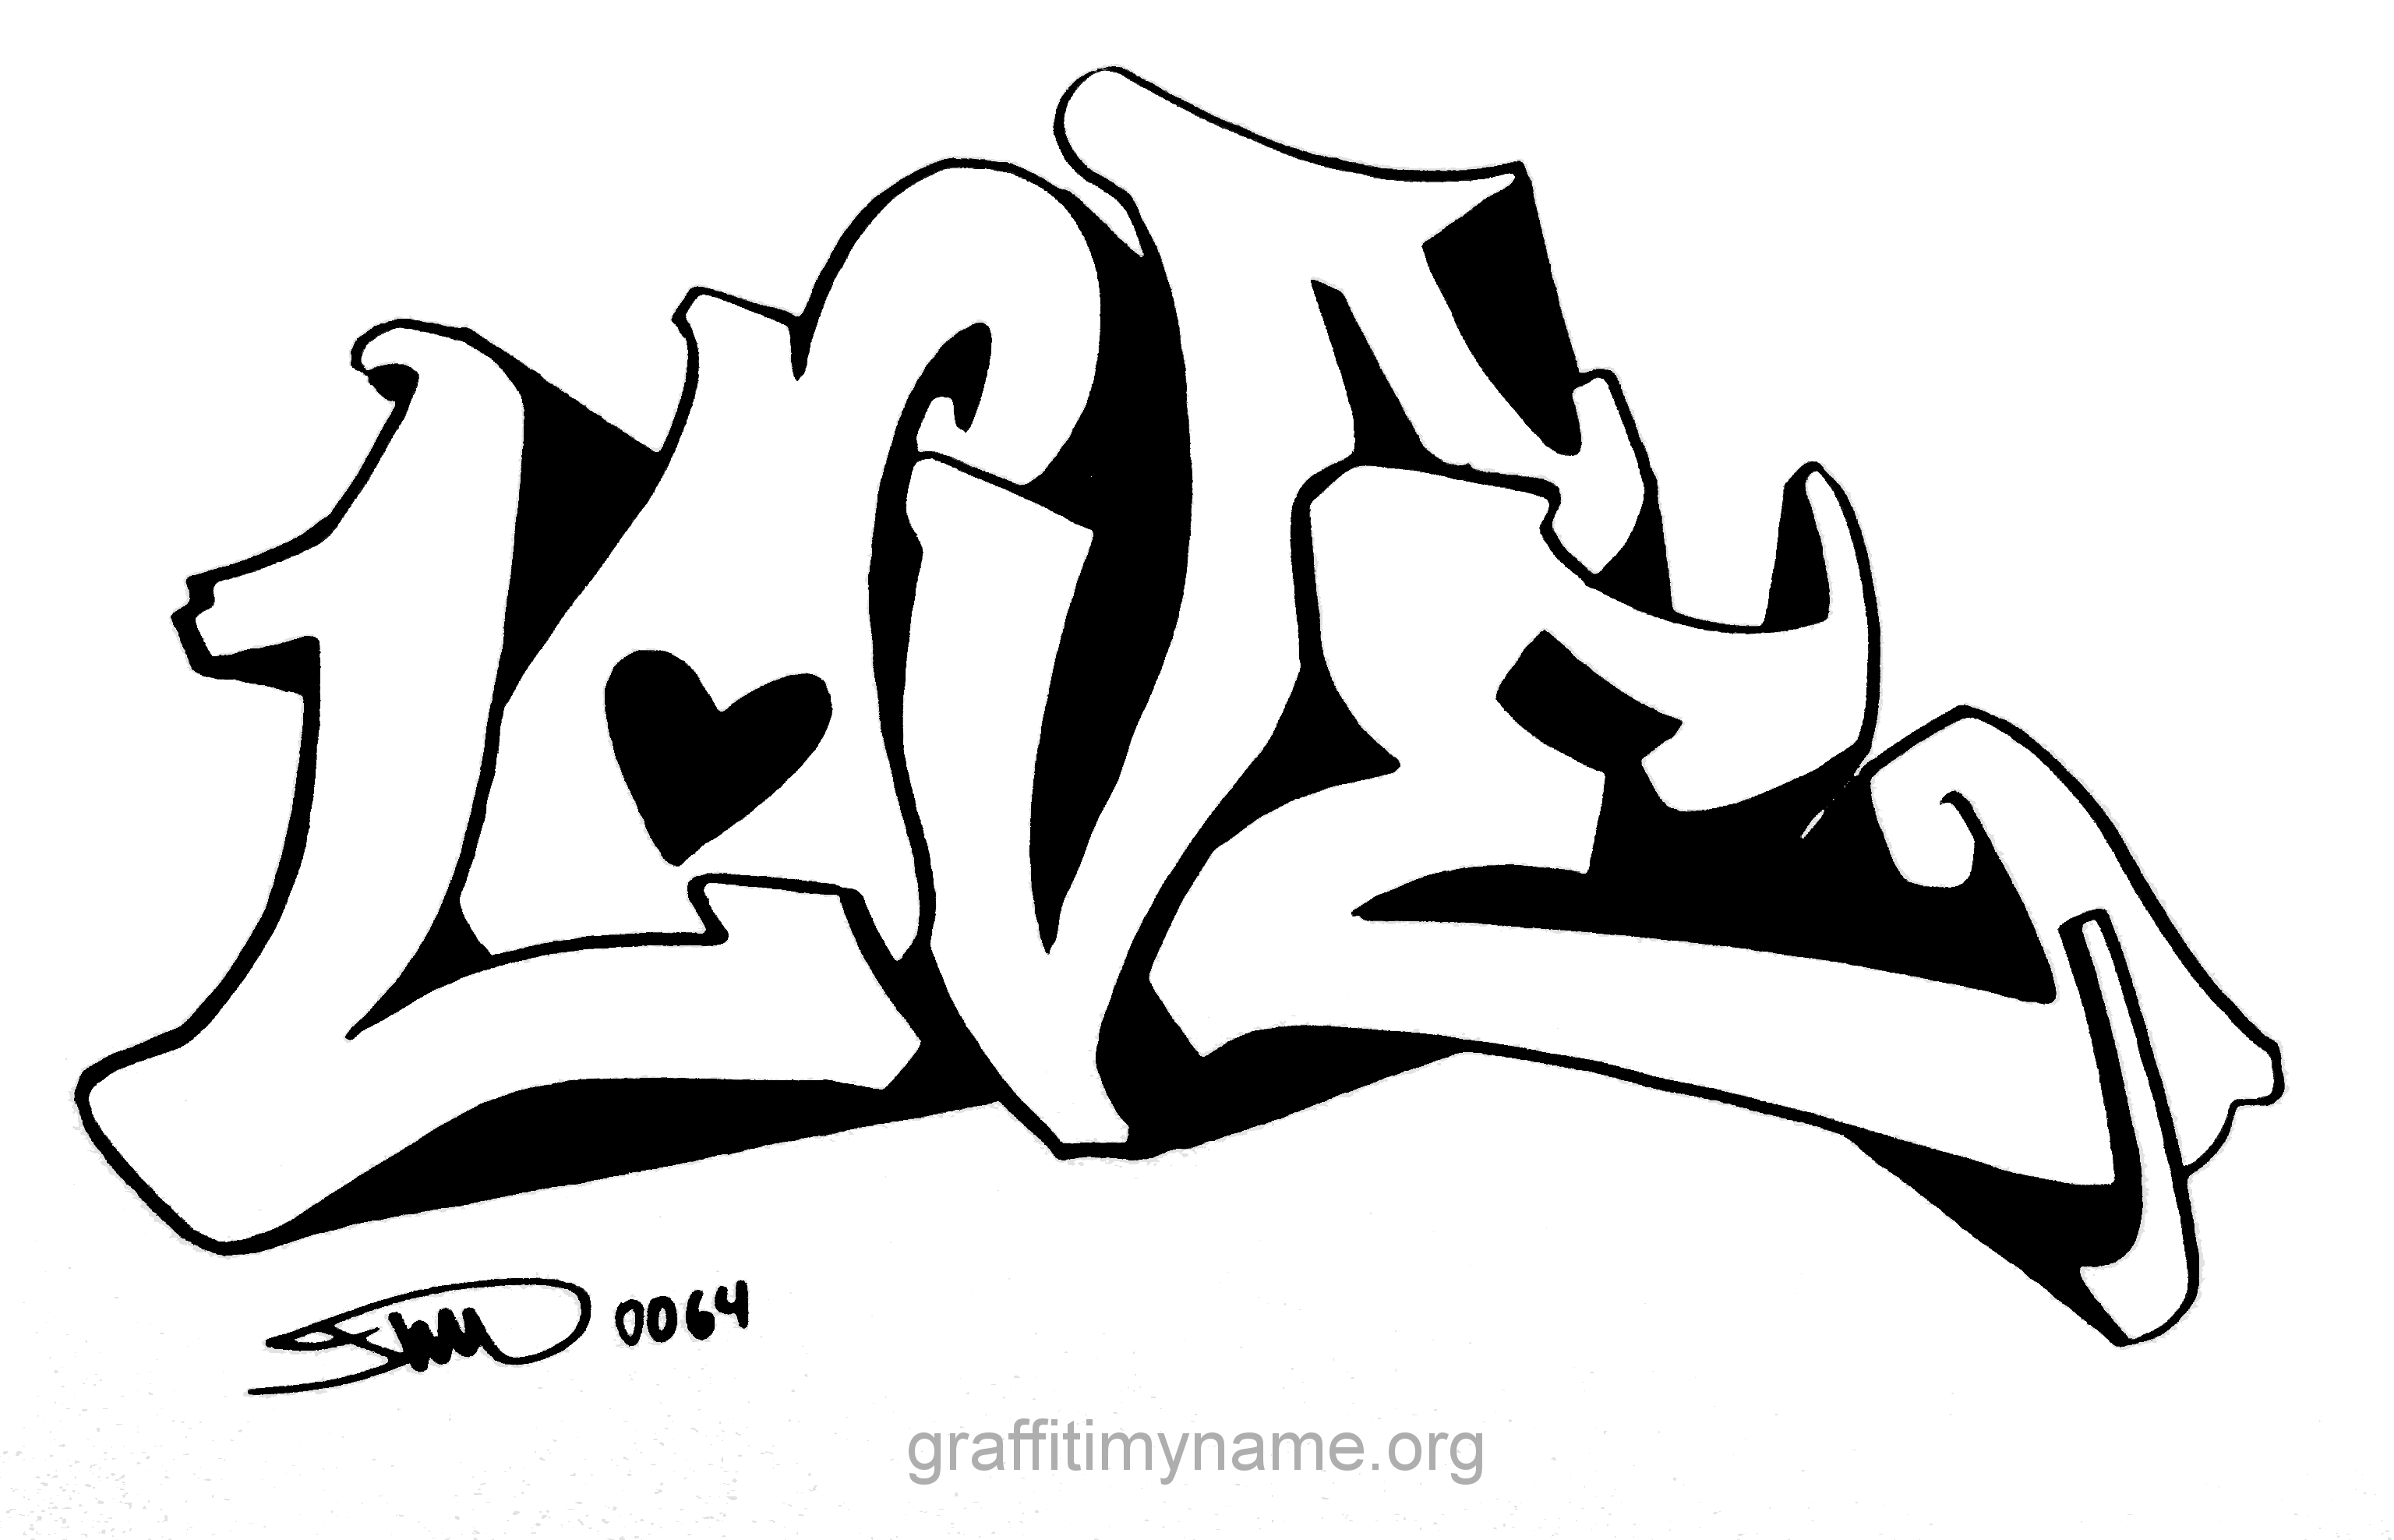 Love a graffiti peice of the name love